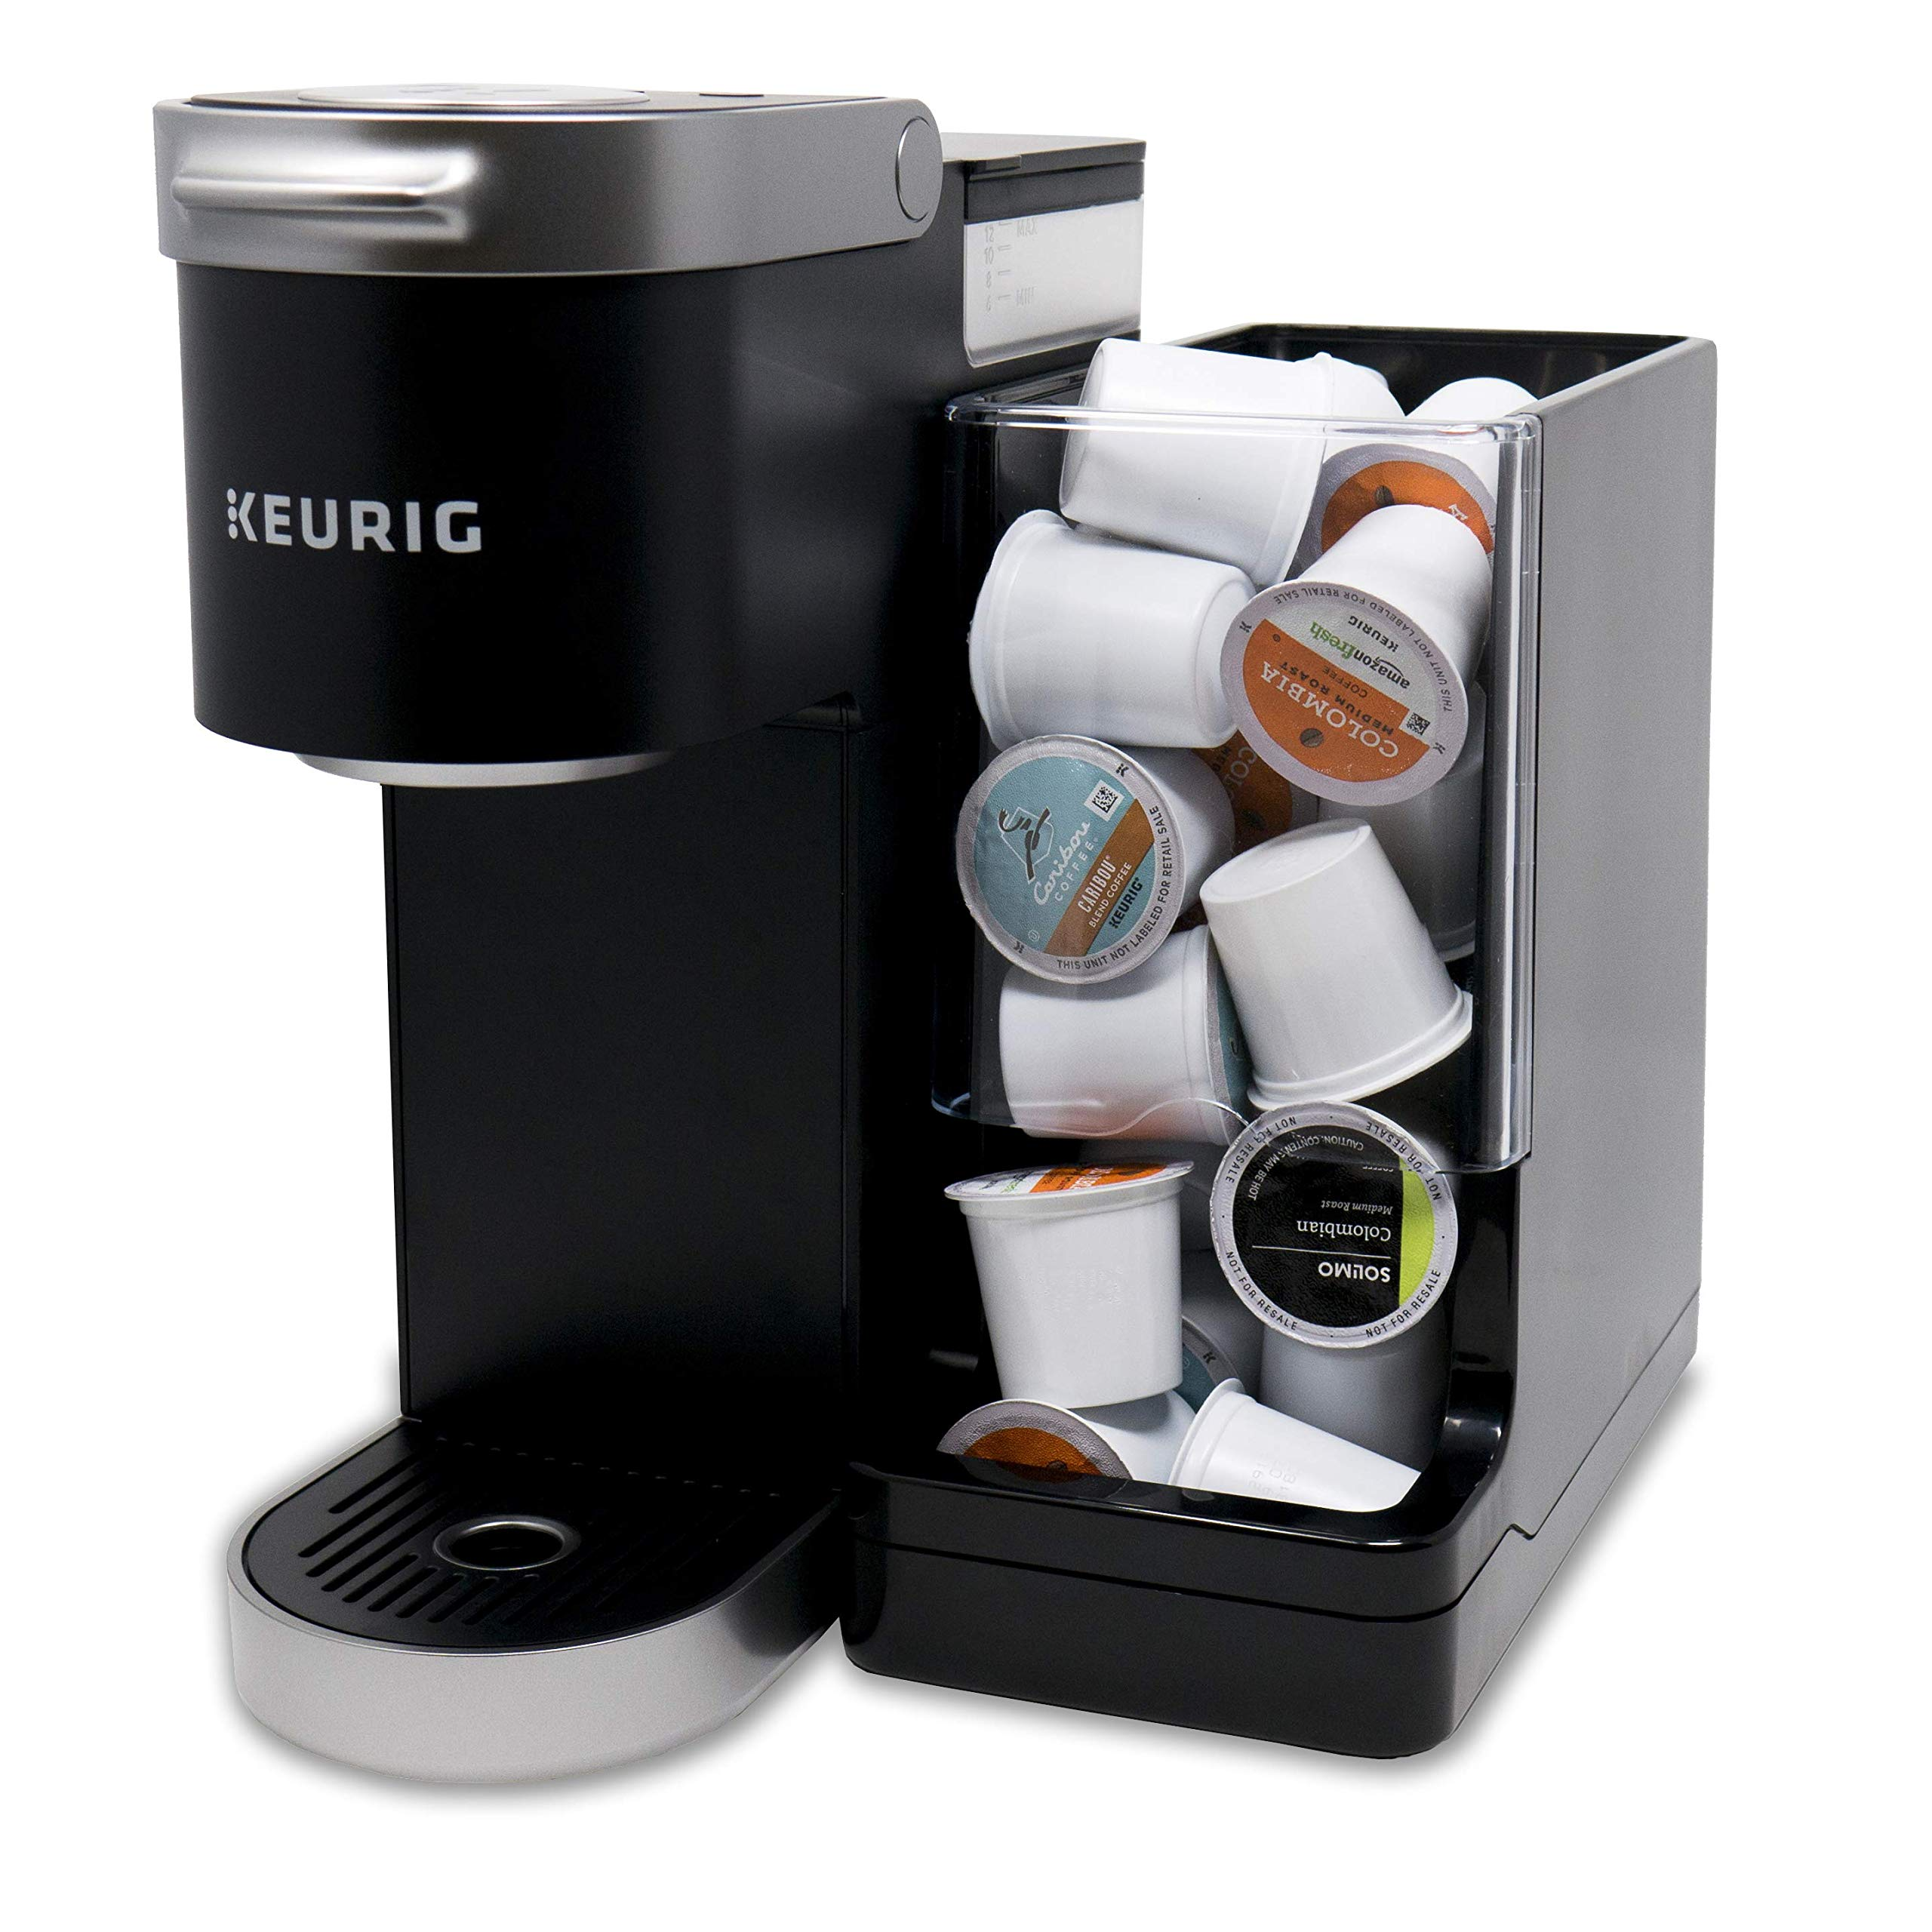 Never Run Out of Coffee - WePlenish Java - Smart Coffee Pod Holder with Amazon Dash Replenishment Built In | Nespresso Capsule and Keurig K-Cup Holder Black by WePlenish (Image #5)